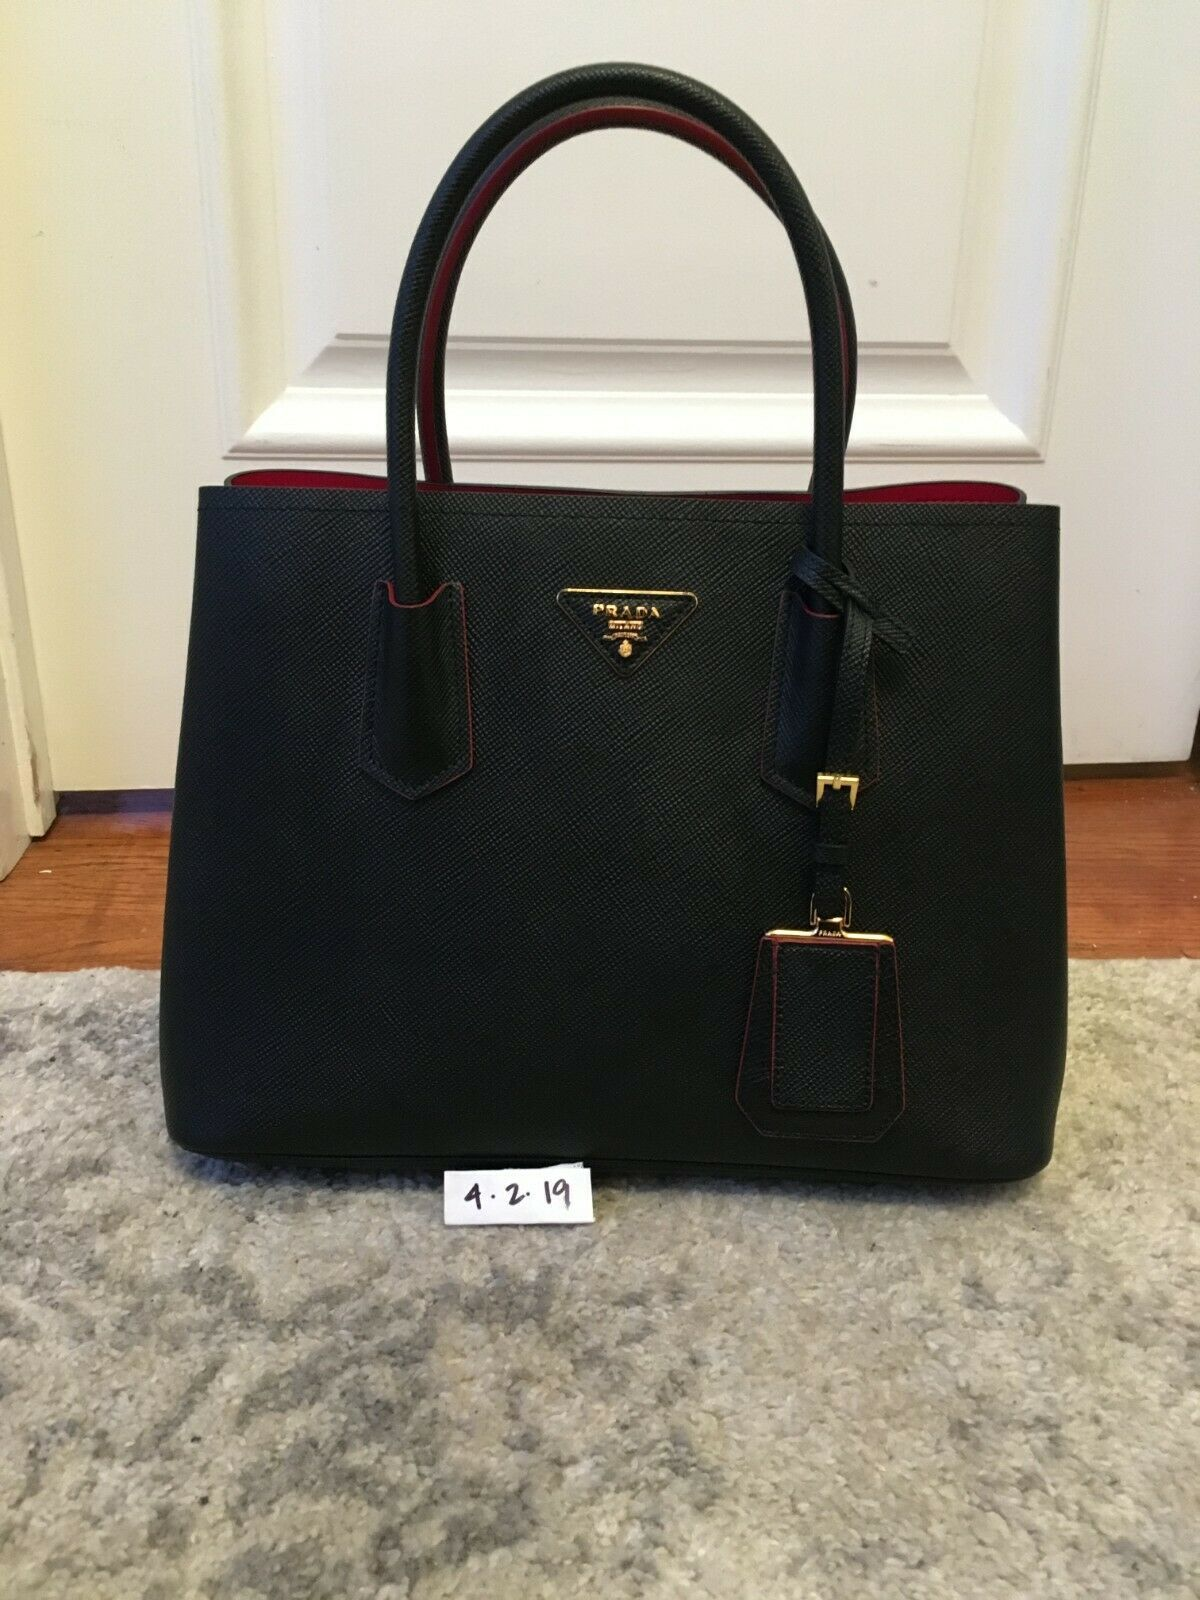 75a98f9b28e8 PRADA Saffiano Cuir Small Double Bag Black Red (Nero Fuoco) Excellent  Condition